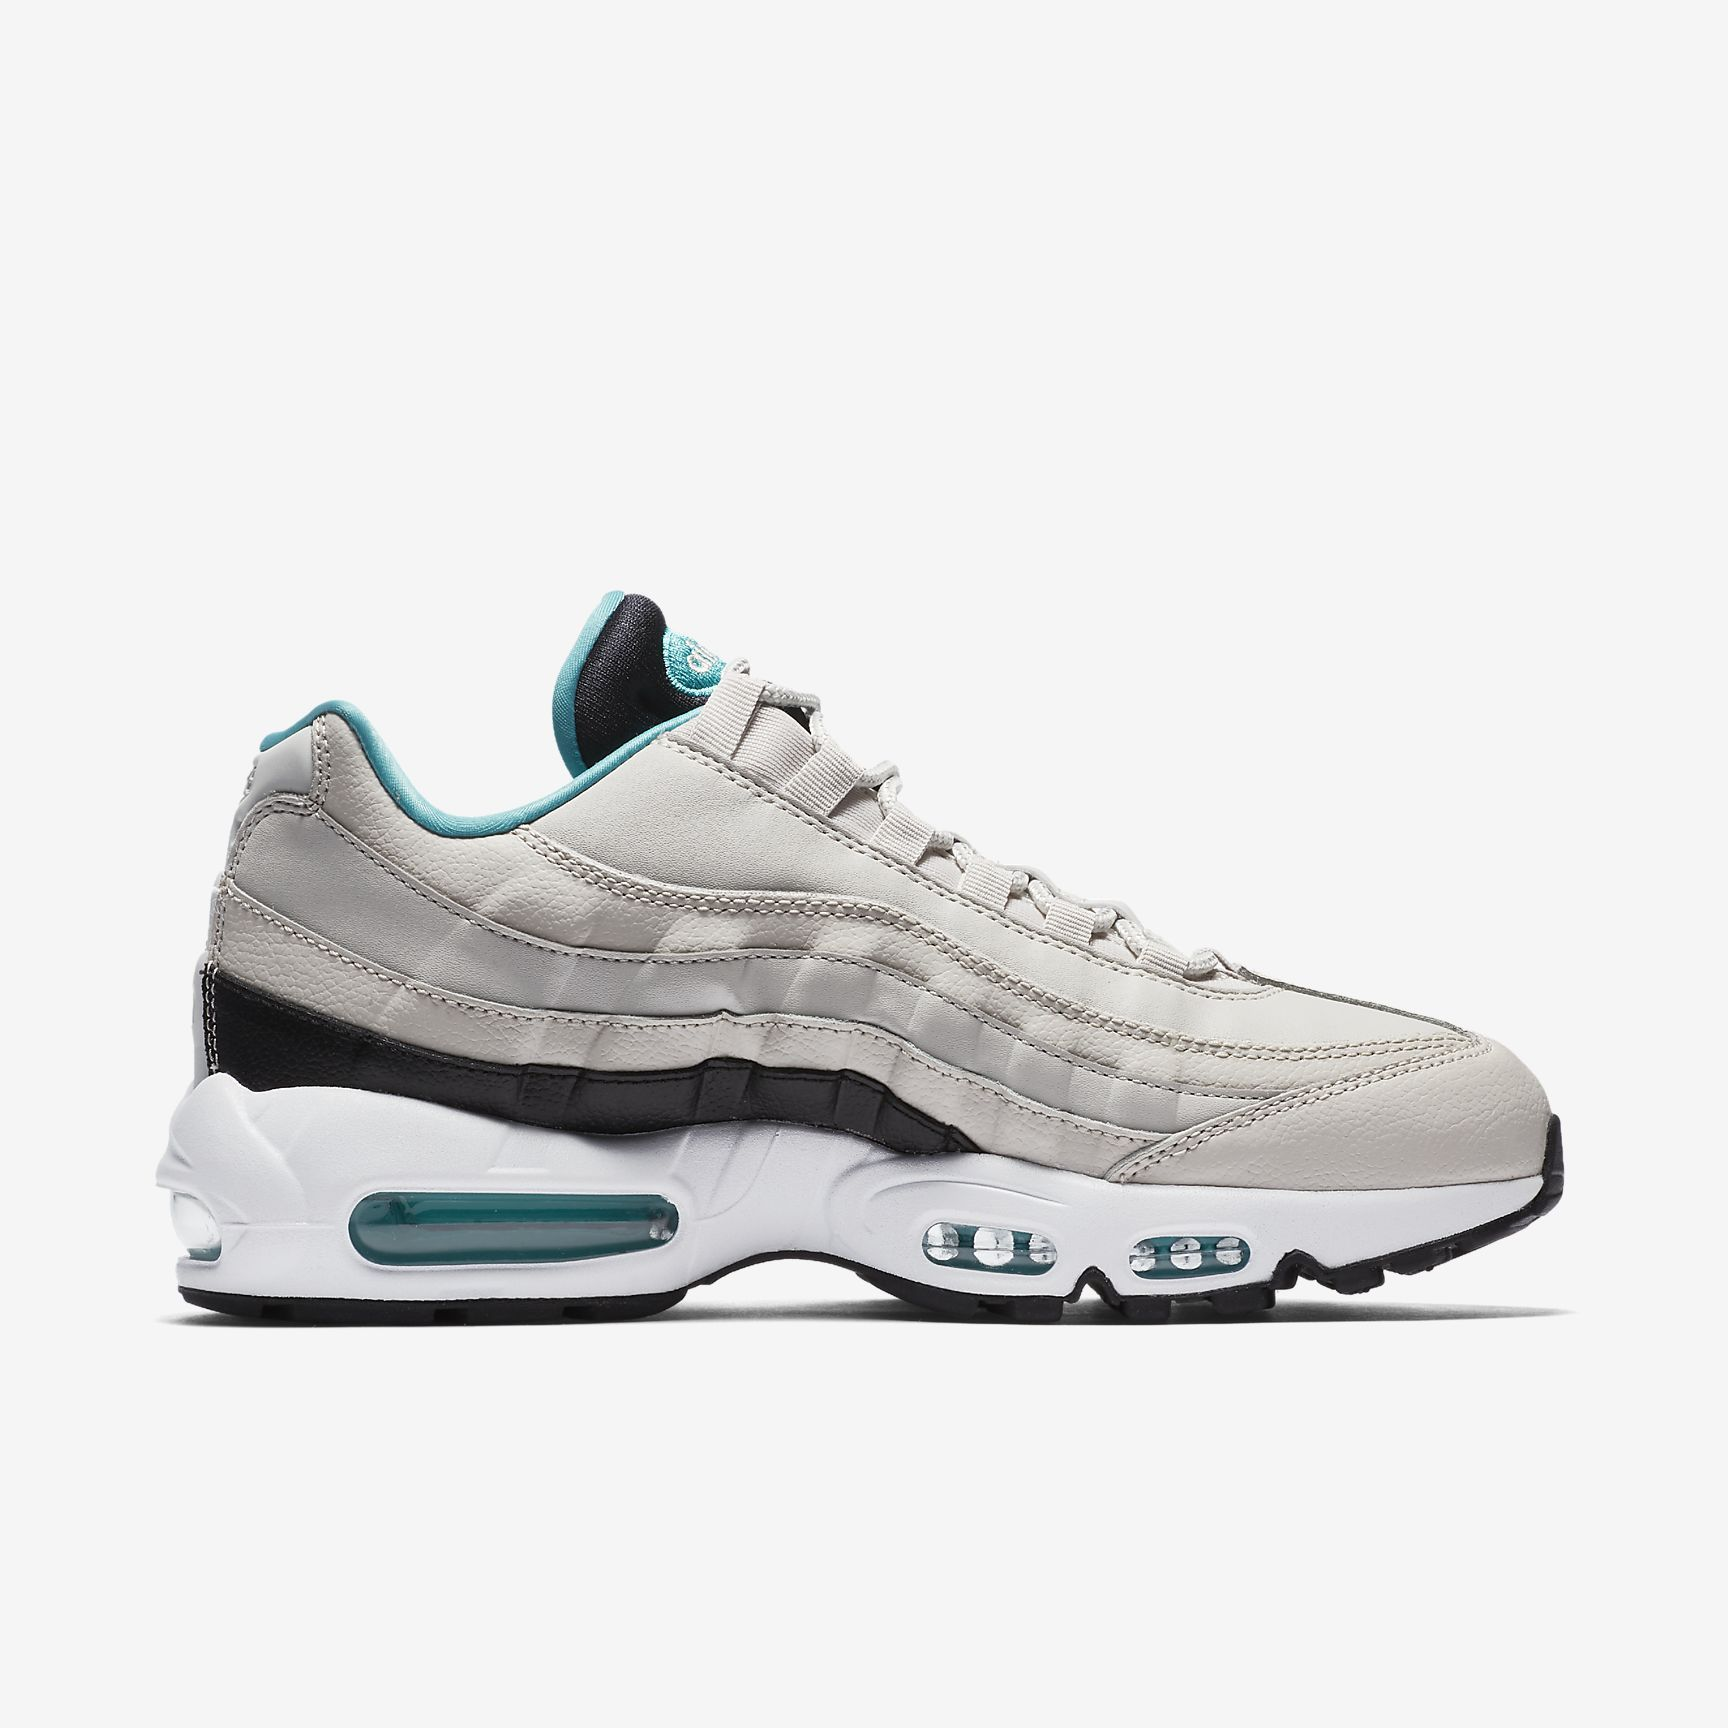 reputable site 12d25 f83af Chaussures Homme AIR MAX 95 Essential Beige clair Noir Blanc Turquoise Sport